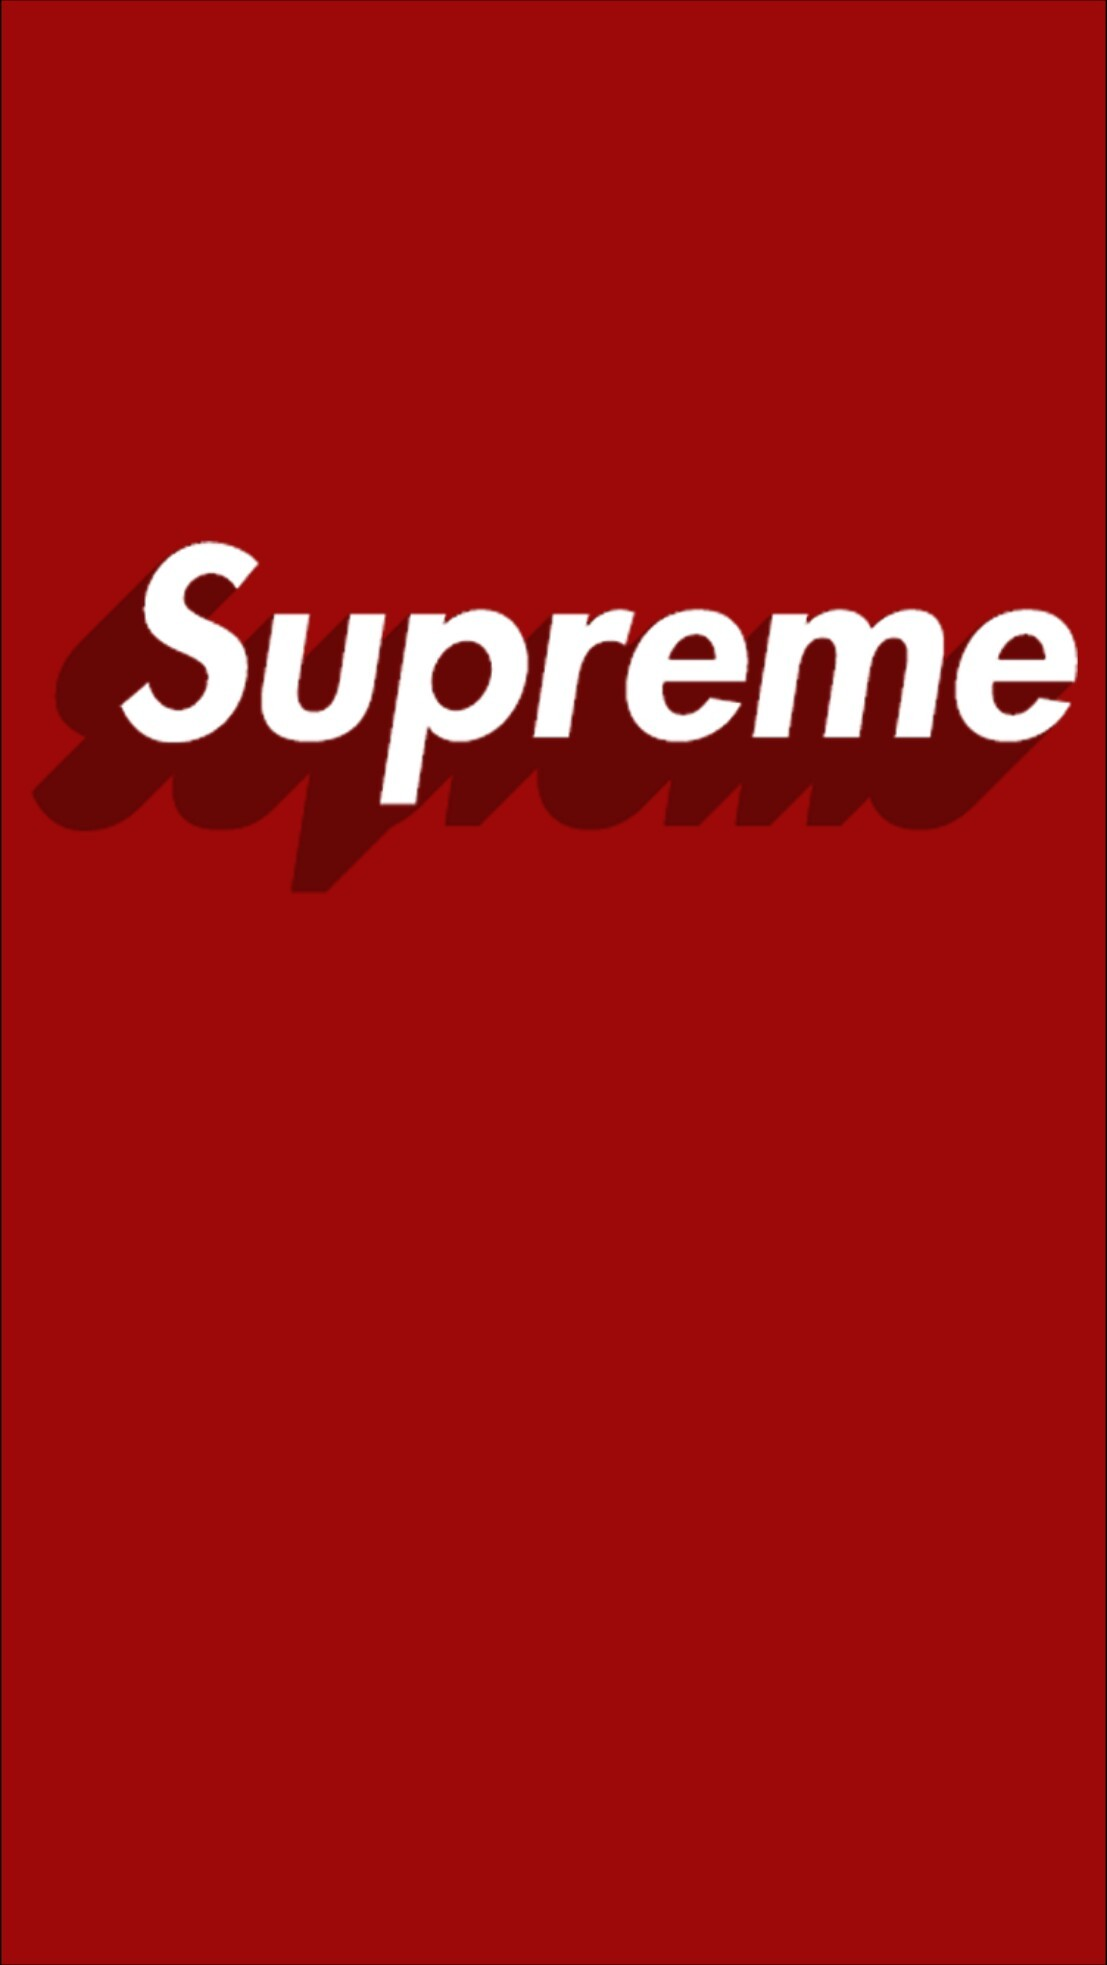 Supreme wallpapers for mobile